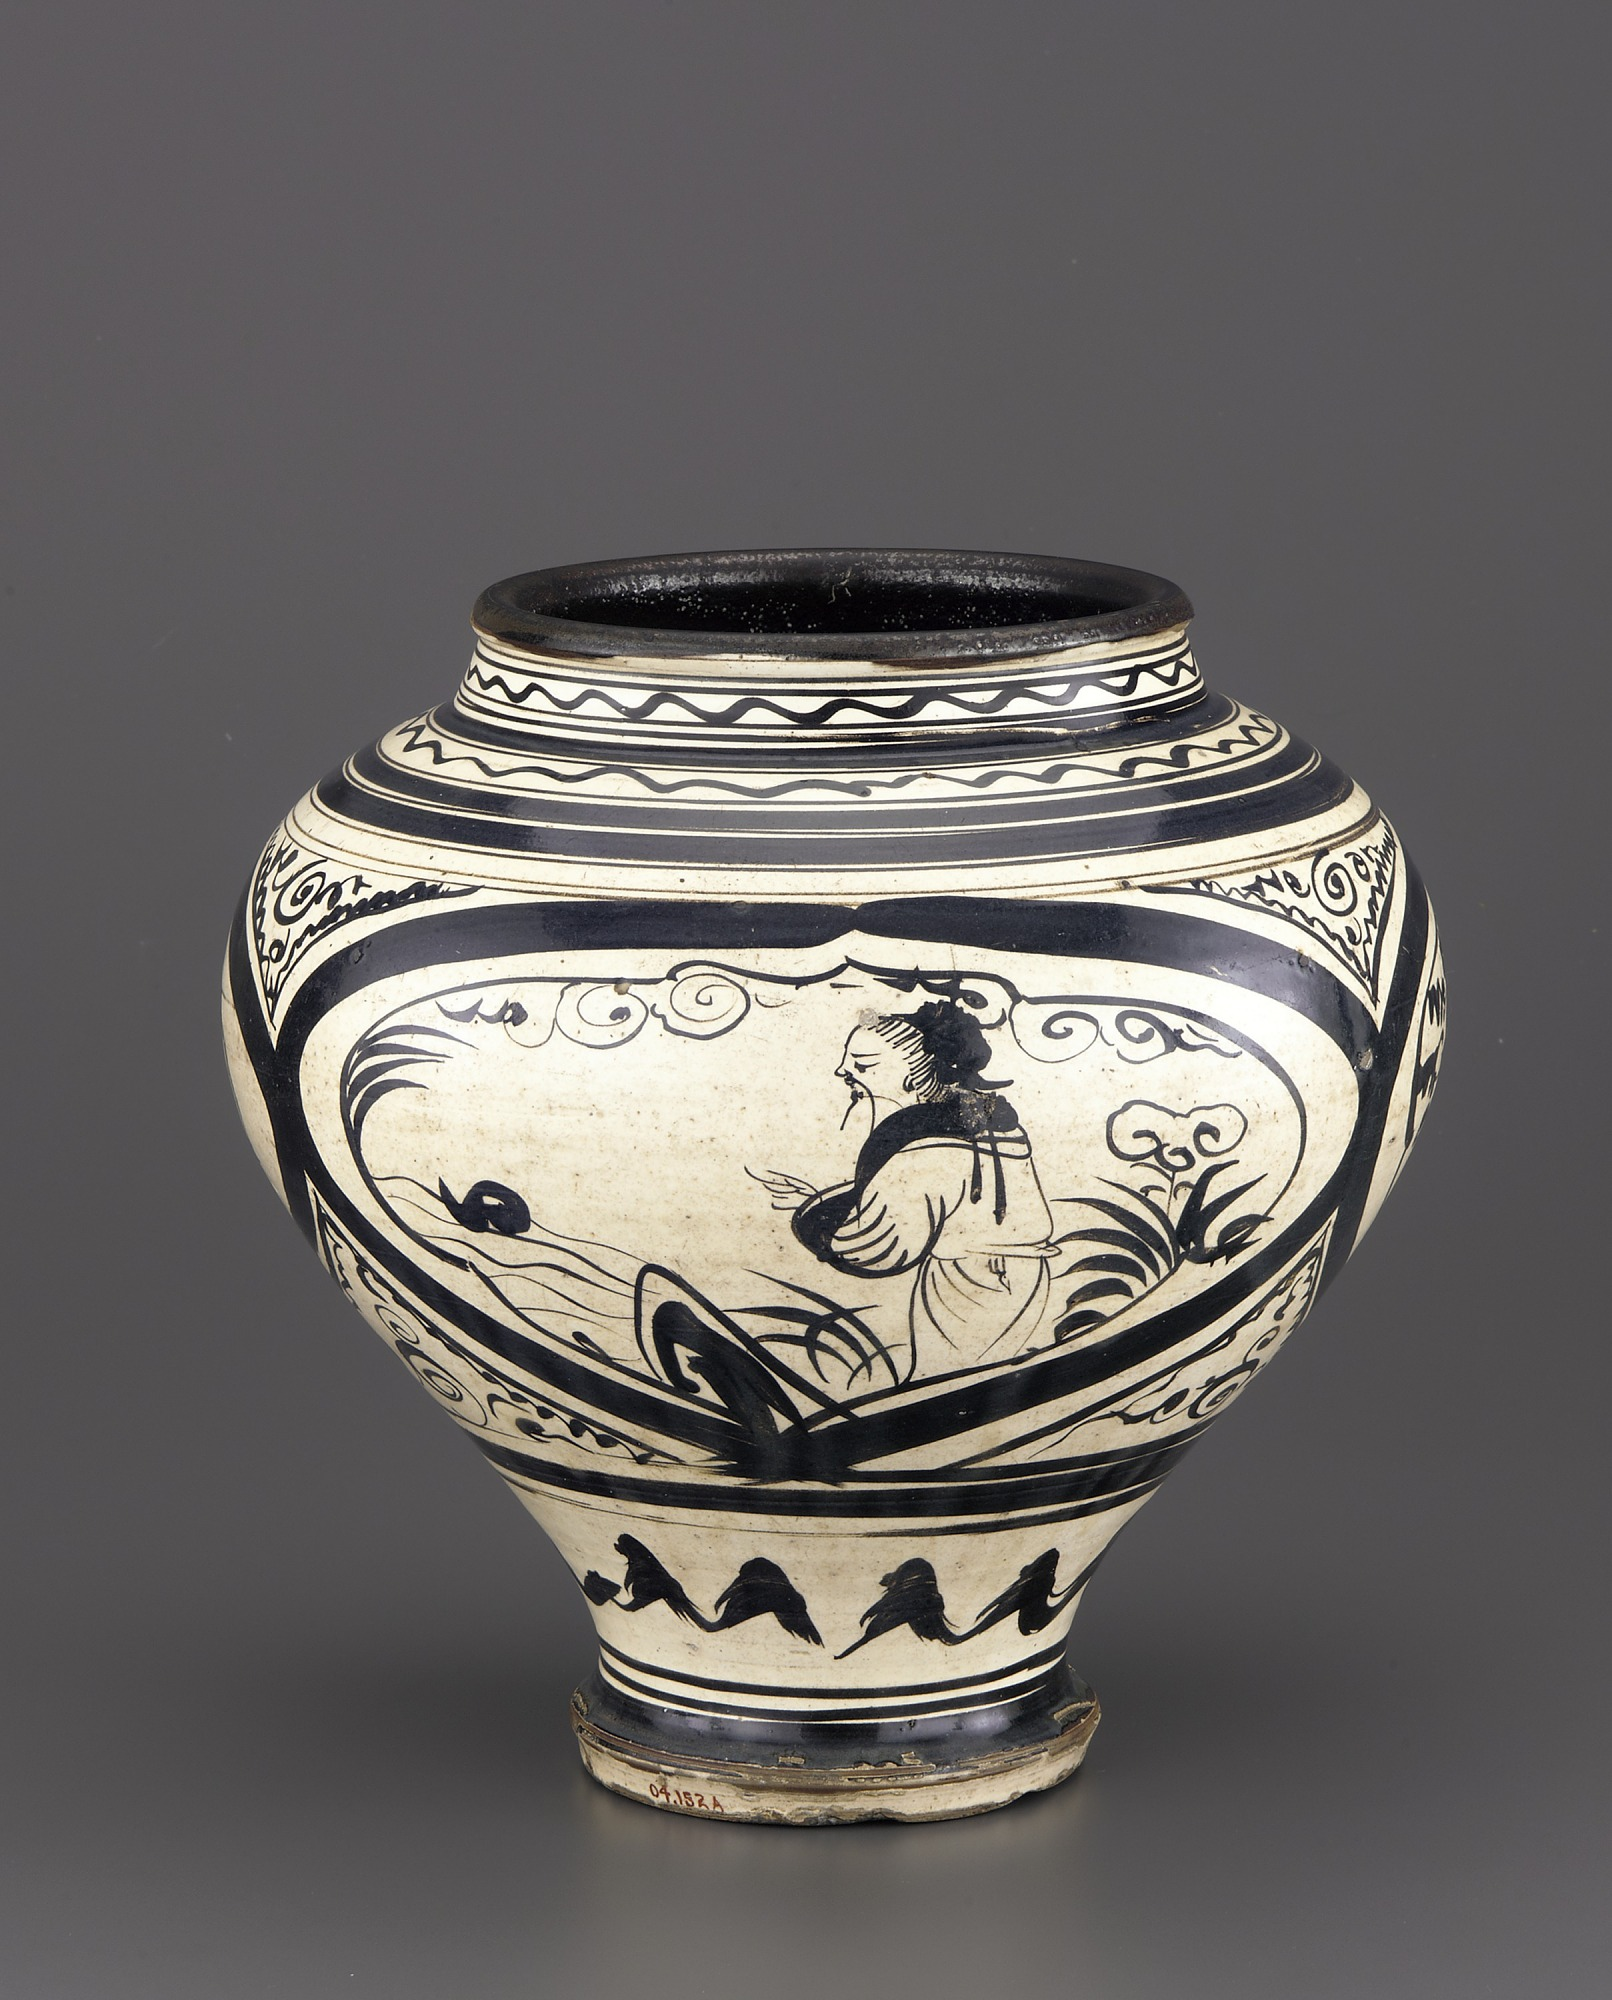 profile: Cizhou or Cizhou-type ware wine jar